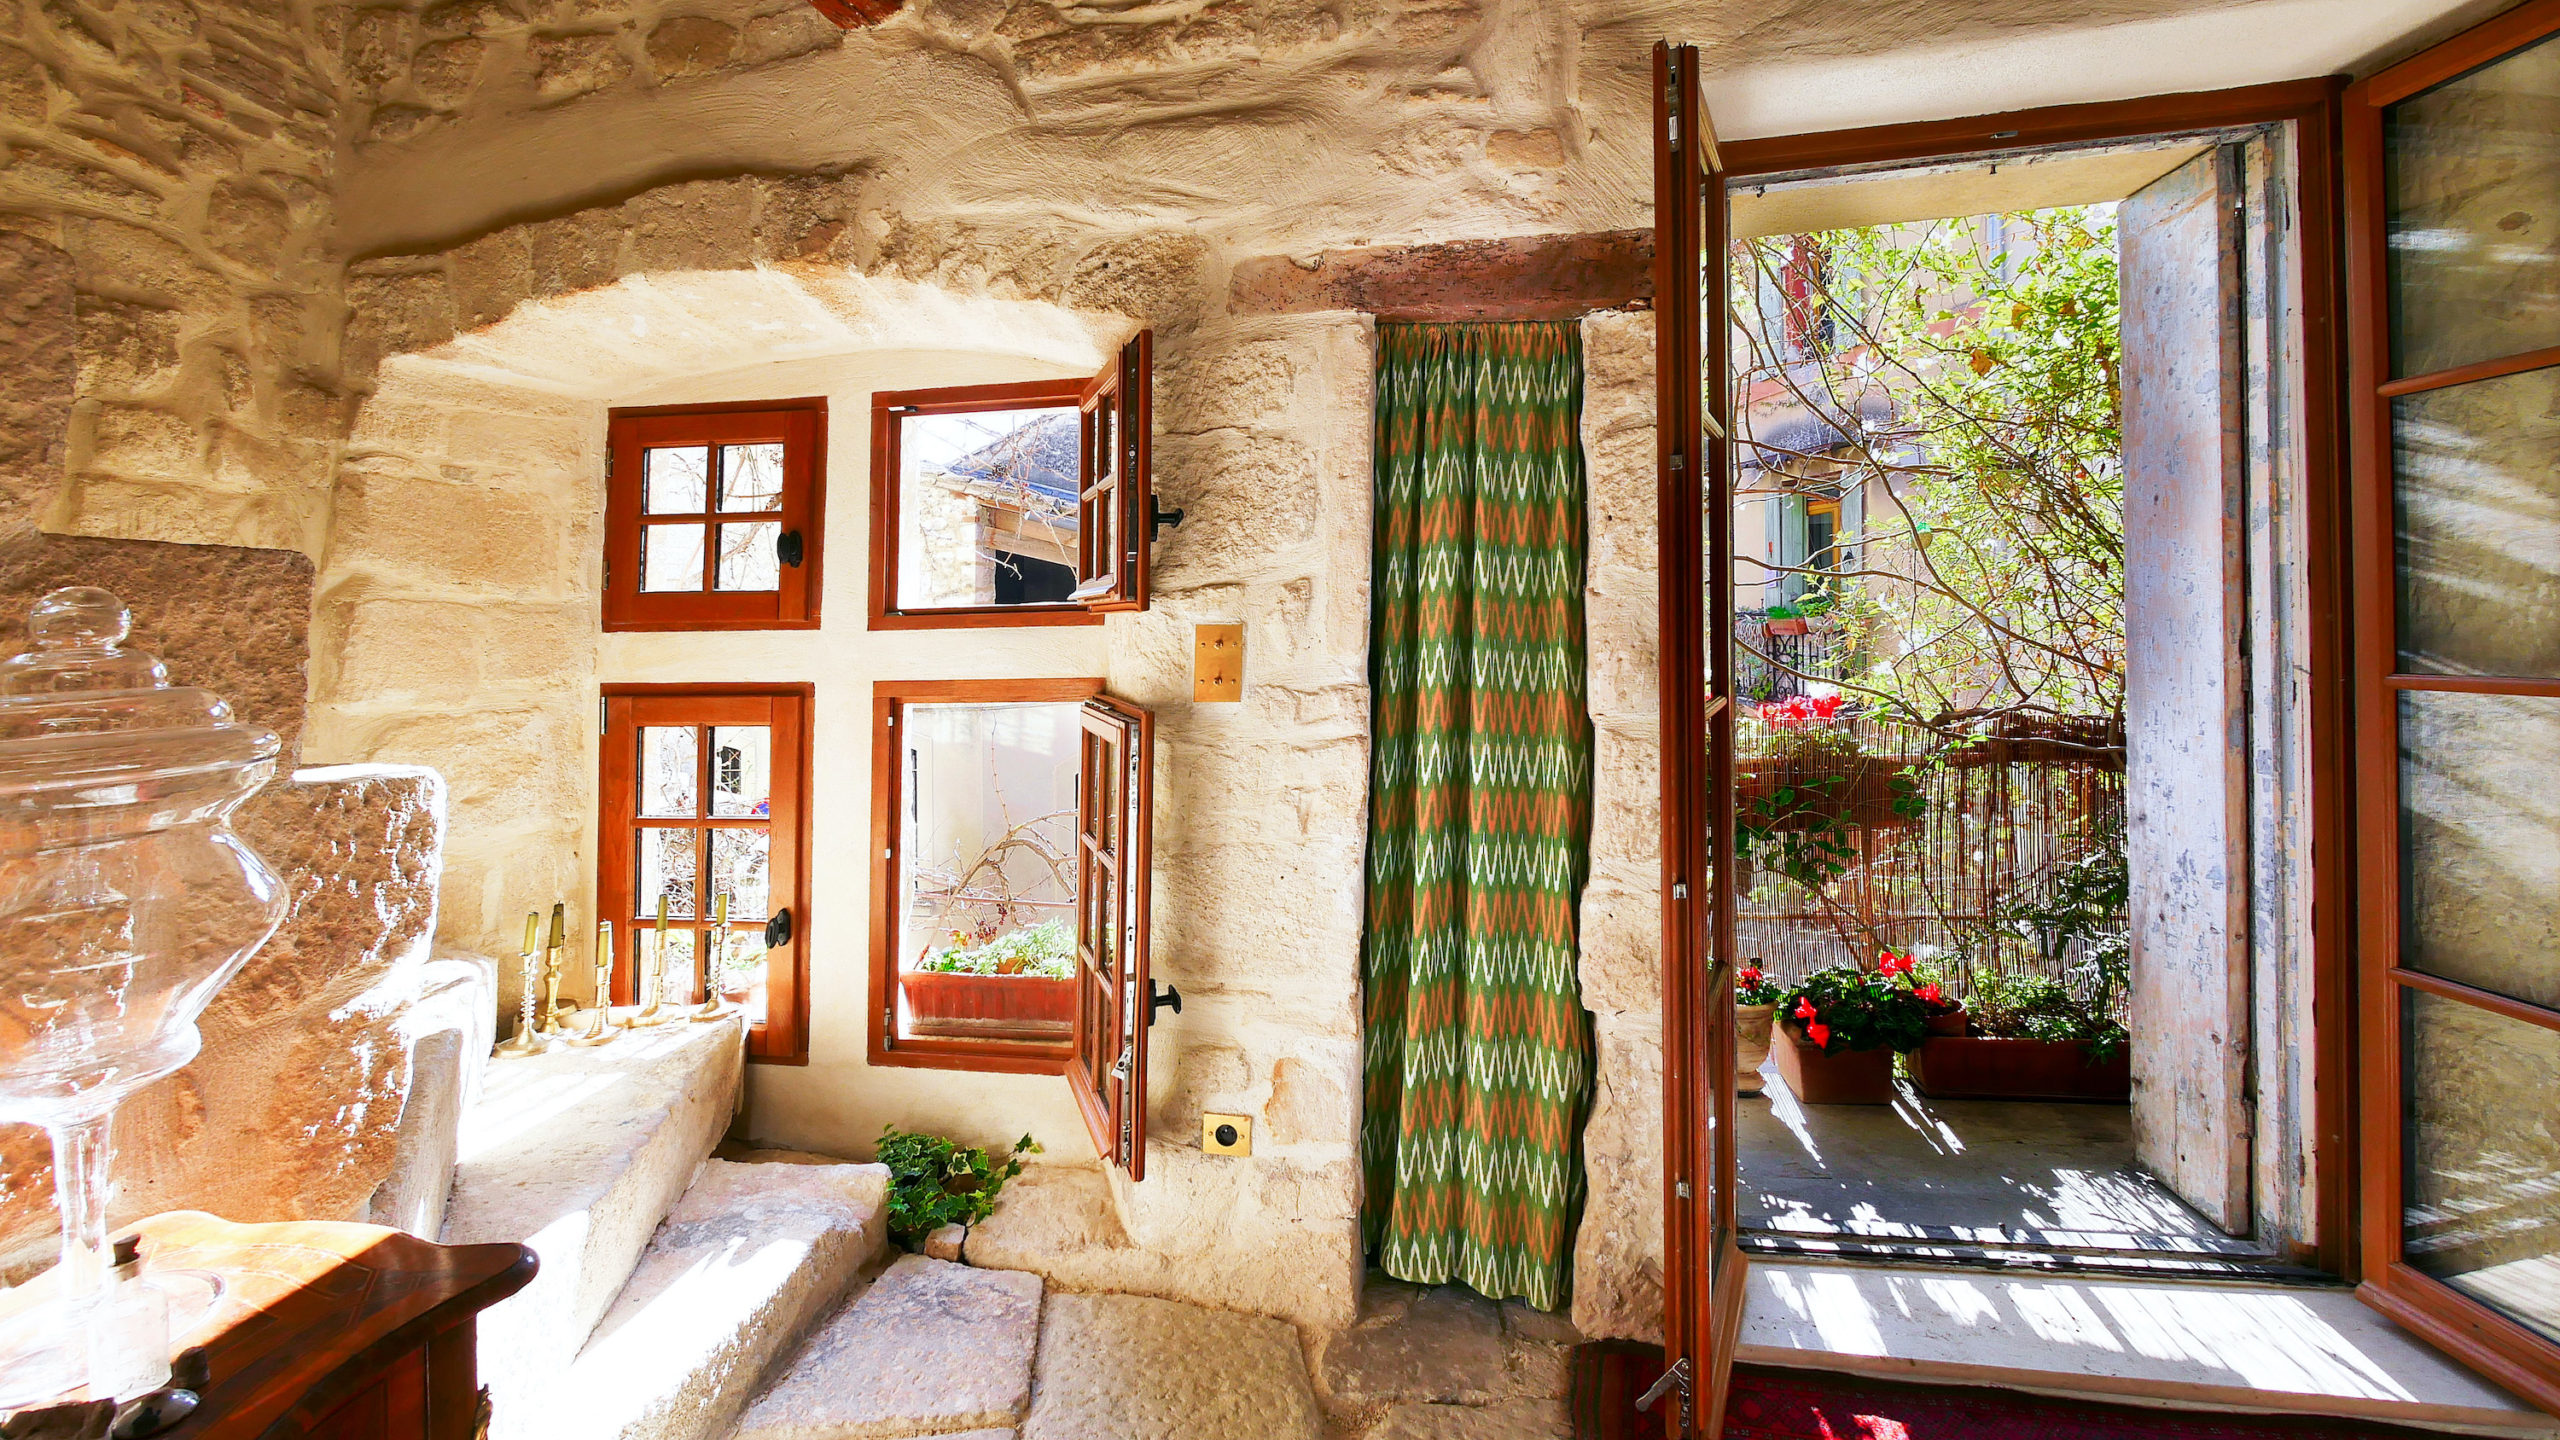 2271 : Uzès, a real gem !  15th century town house, entirely restored with style..